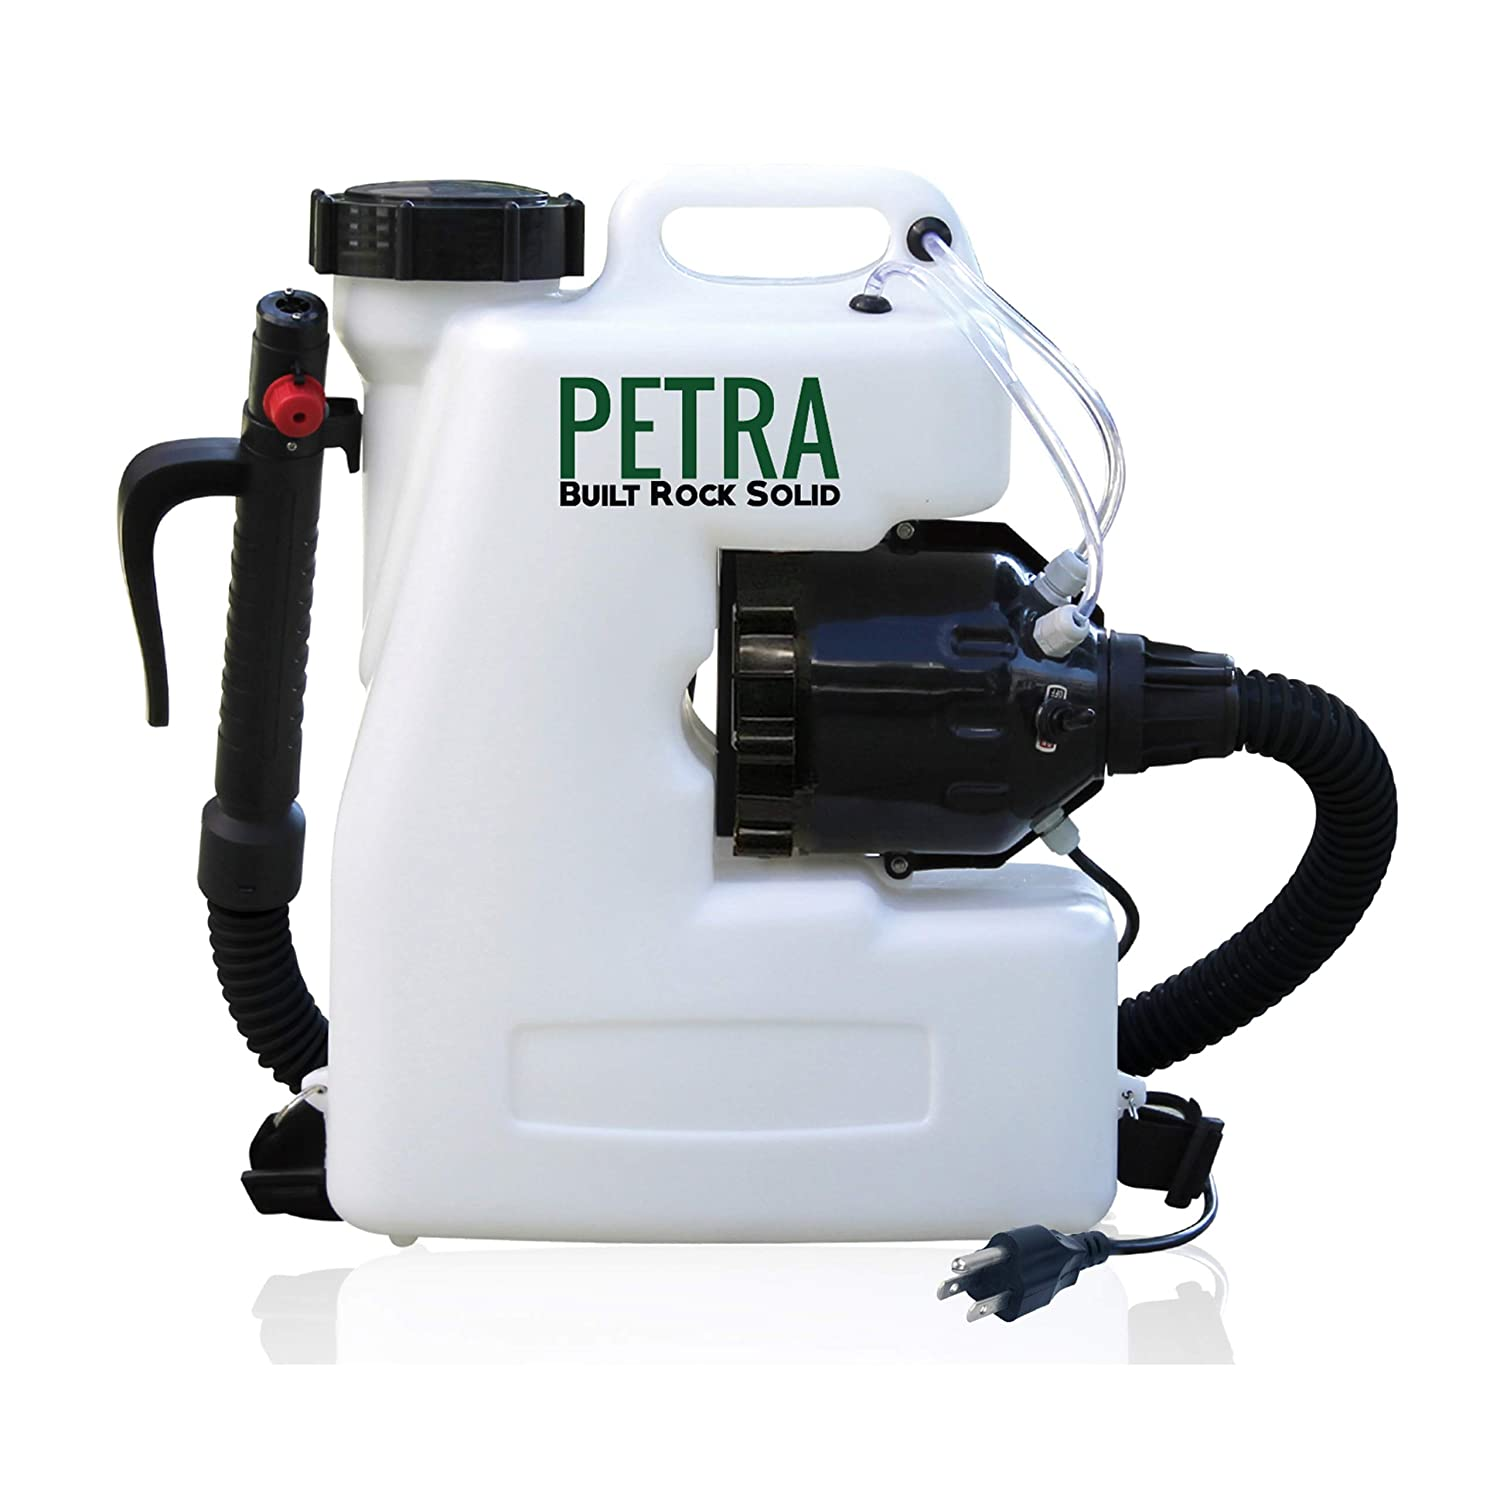 Petra Electric Fogger Atomizer Backpack Sprayer - 4 Gallon Mist Blower with Extended Commercial Hose for Pest Control - Insect, Bug & Mosquito Fogger ...